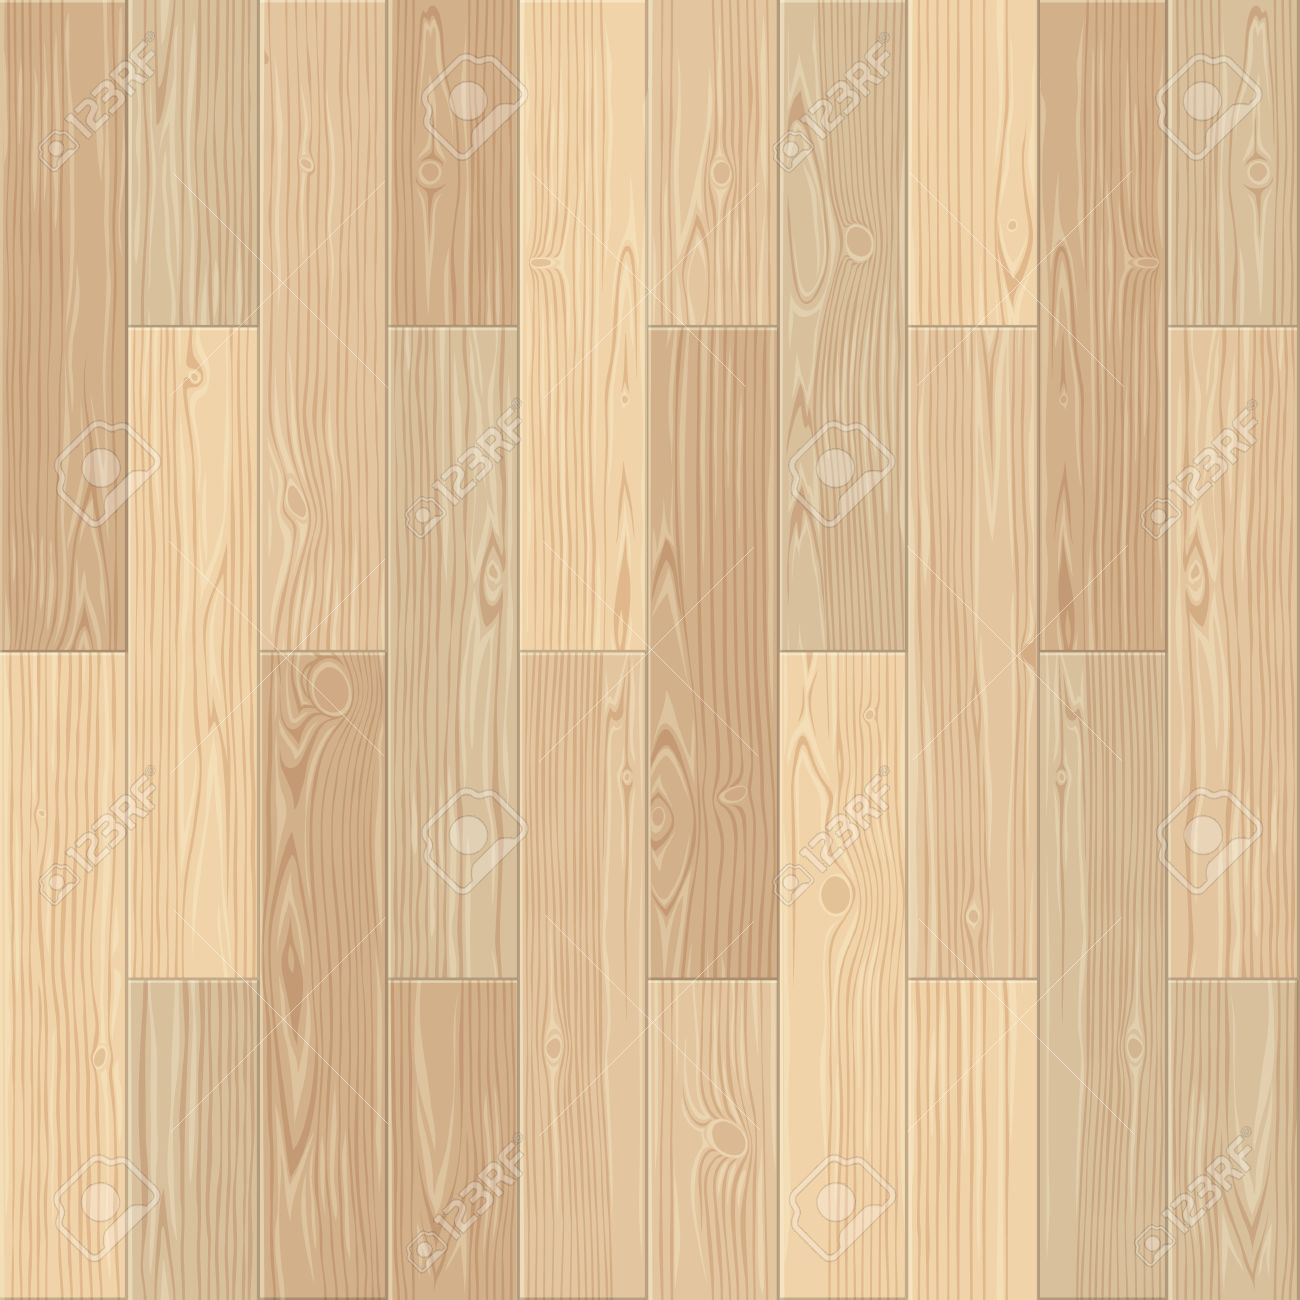 seamless light wood floor. Light parquet seamless floor texture  Stock Vector 53964765 Parquet Seamless Floor Texture Royalty Free Cliparts